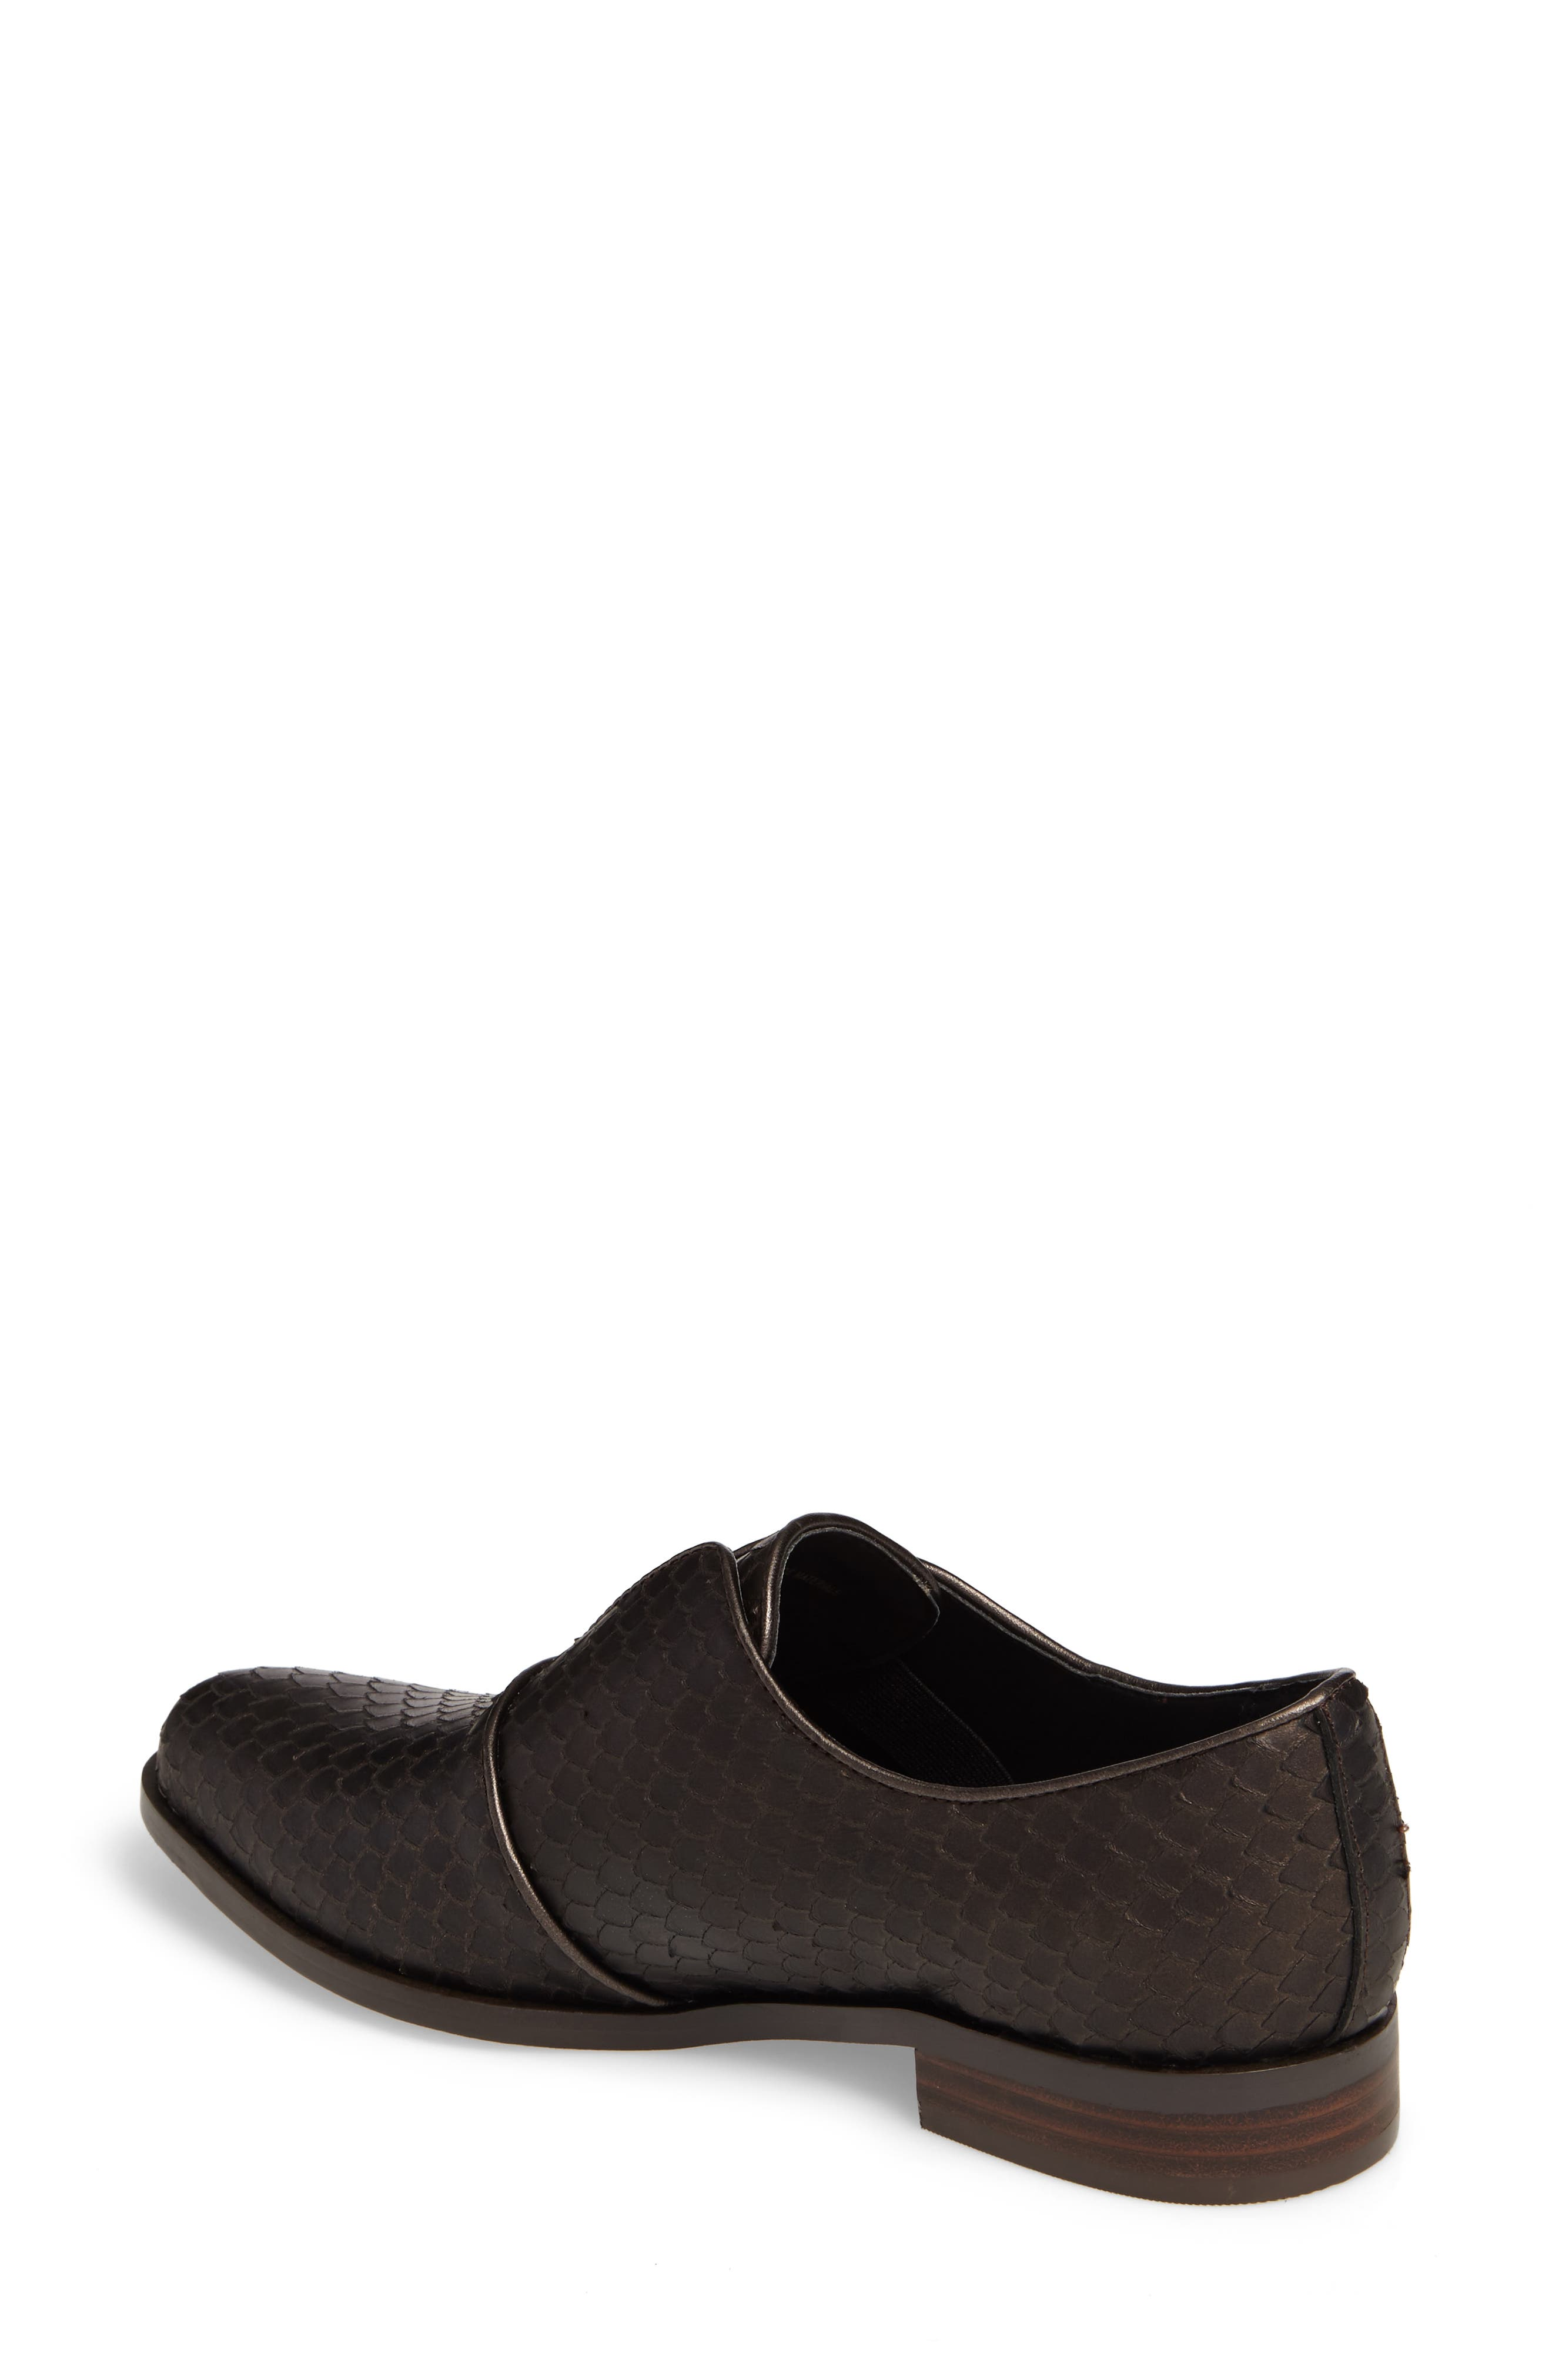 Isola Maria Slip-On Oxford,                             Alternate thumbnail 2, color,                             T. MORO BROWN LEATHER